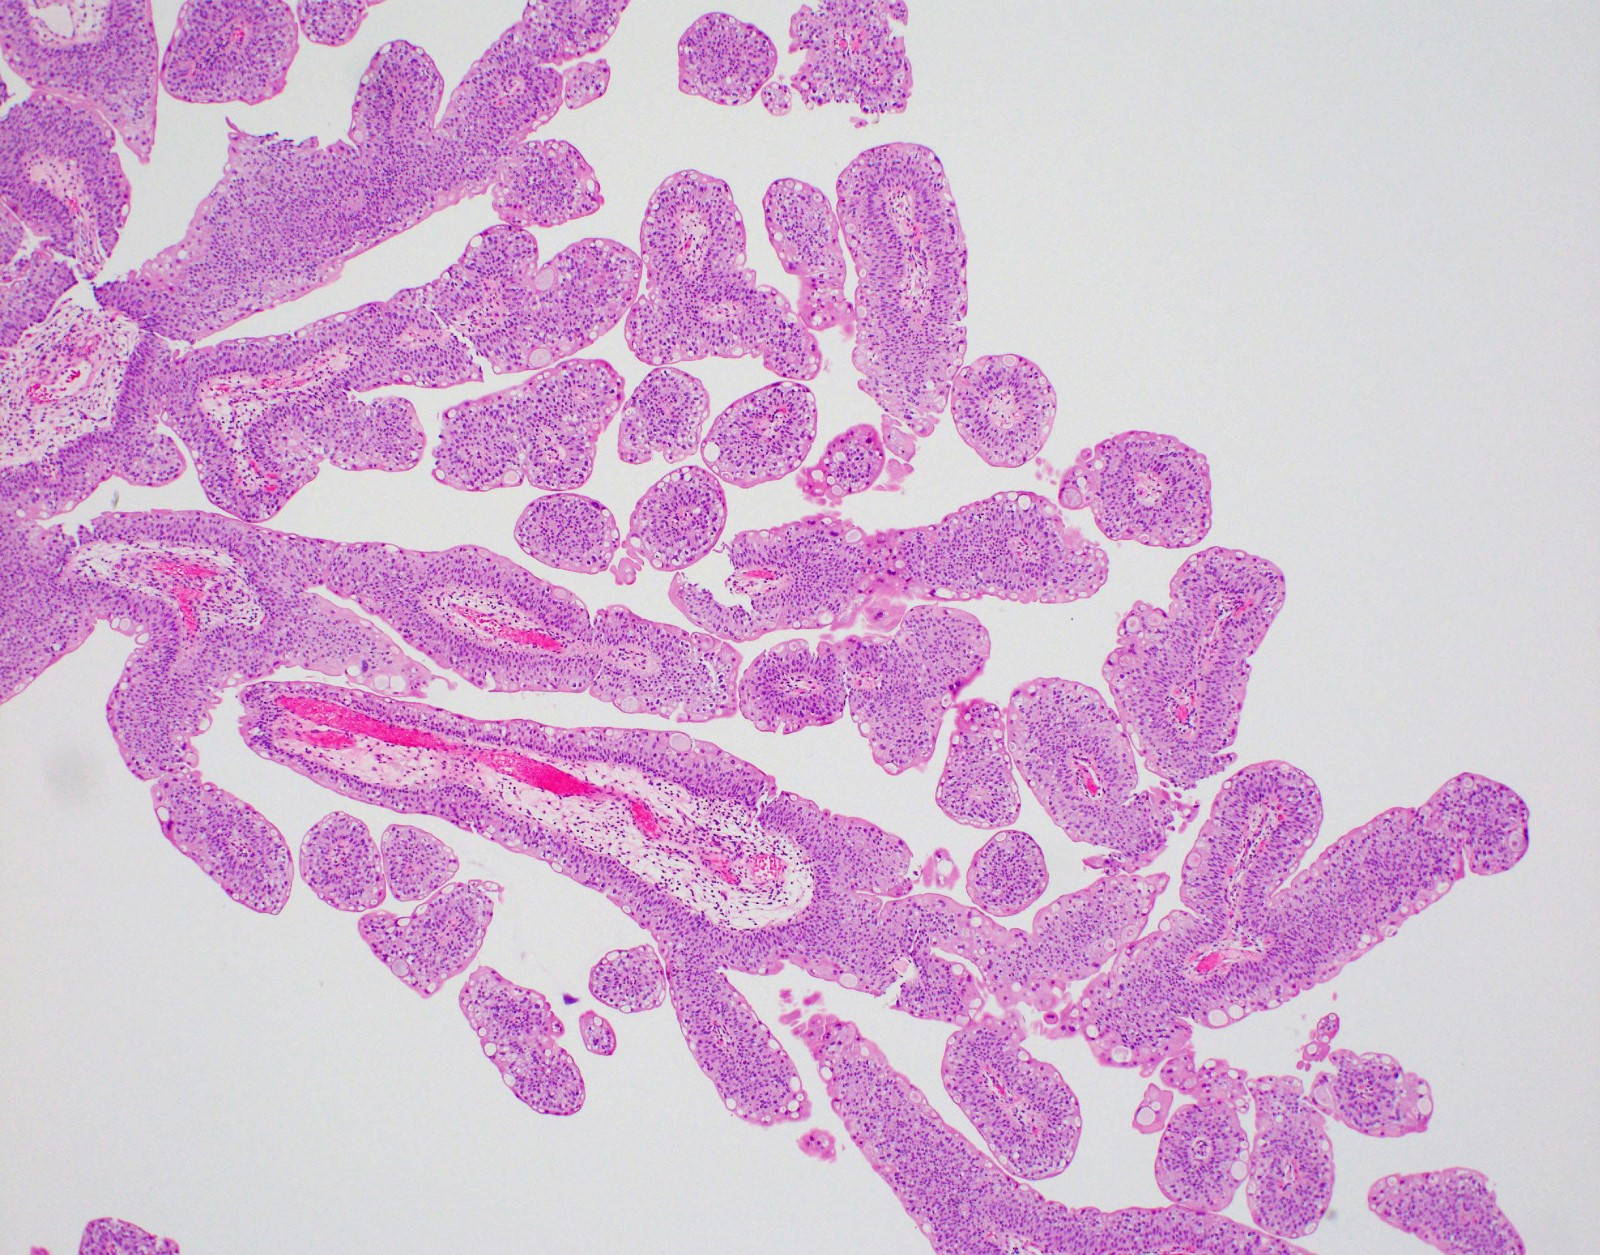 bladder papilloma histology